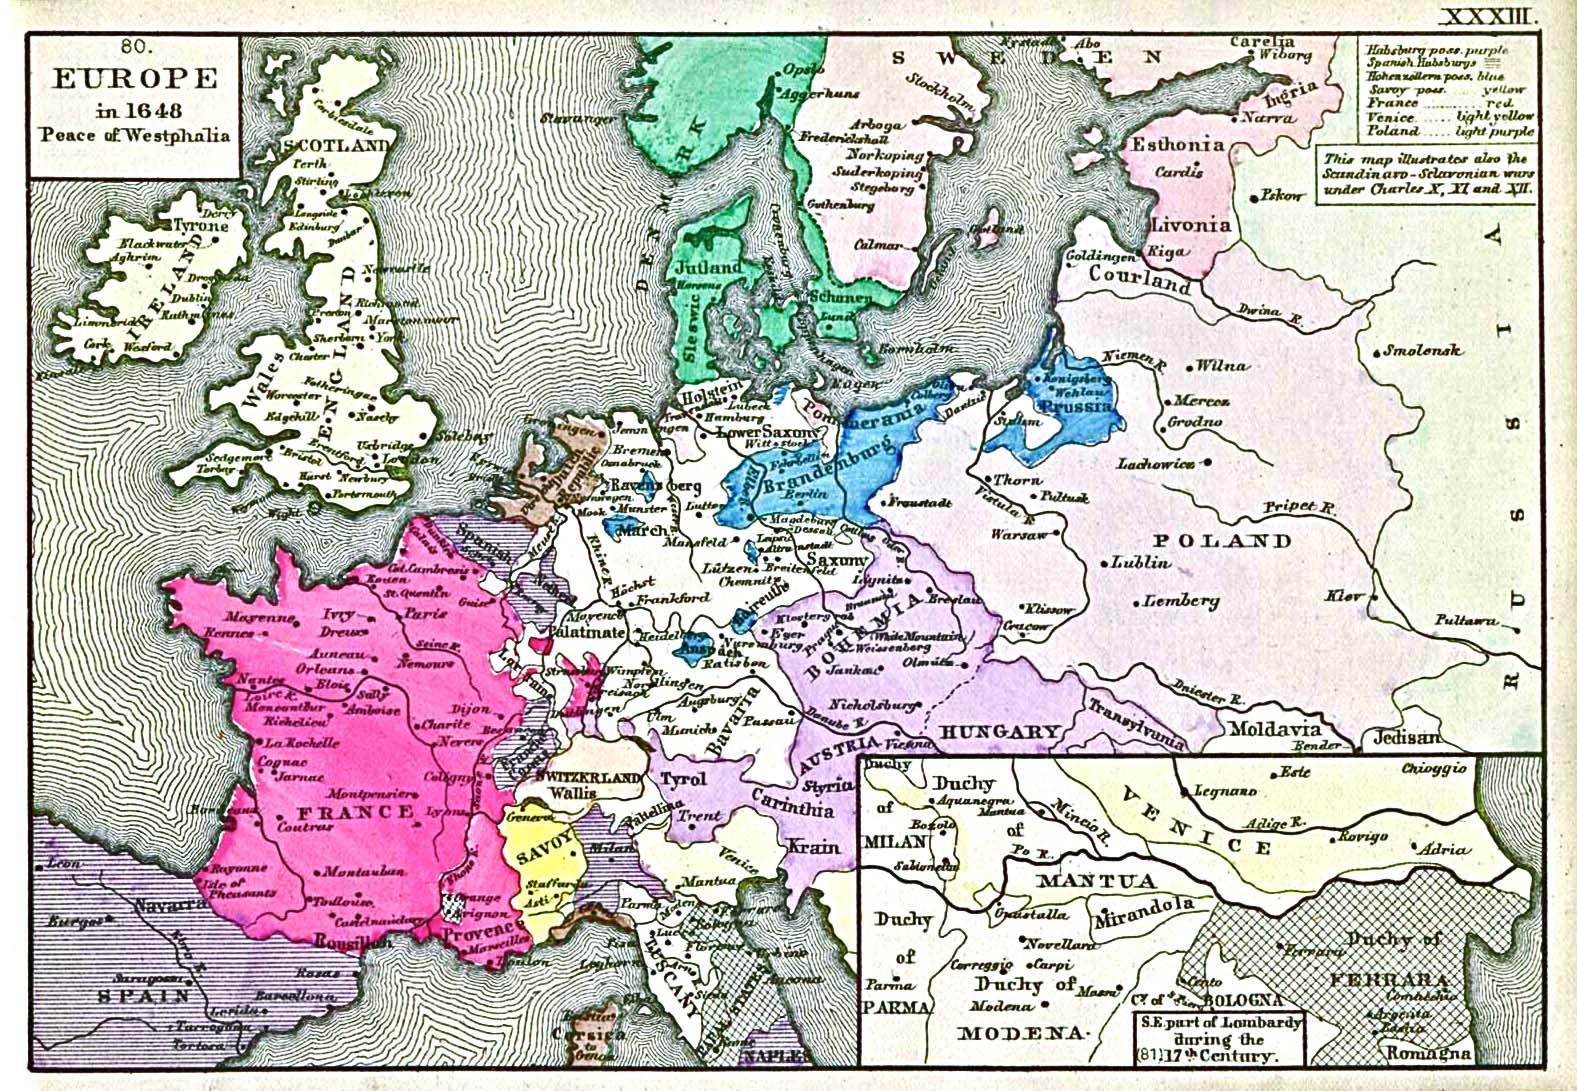 Map of Europe by the end of 1648, 1884, 'An Historical Atlas' by Robert H. Labberton